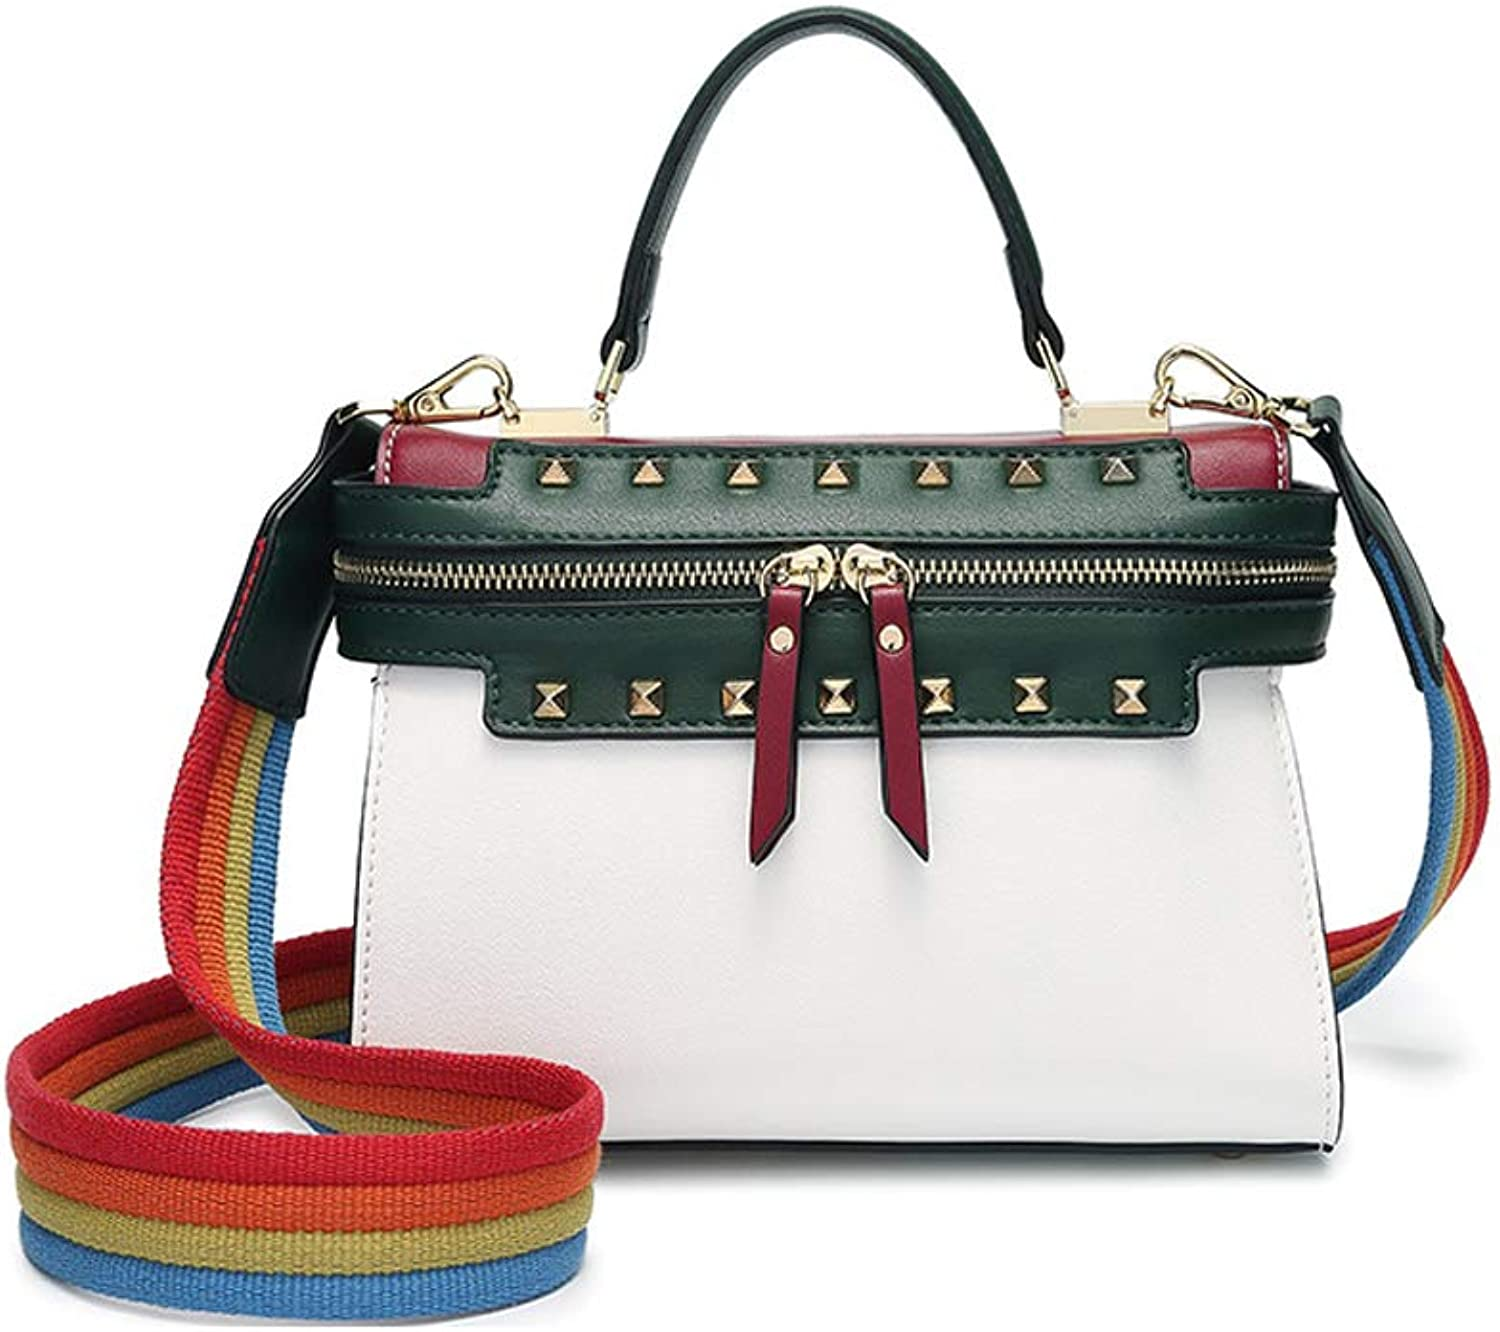 Sturdy New Casual Hit color Wild Wide Shoulder Strap Shoulder Handbag Shoulder Handbag Large Capacity (color   White)